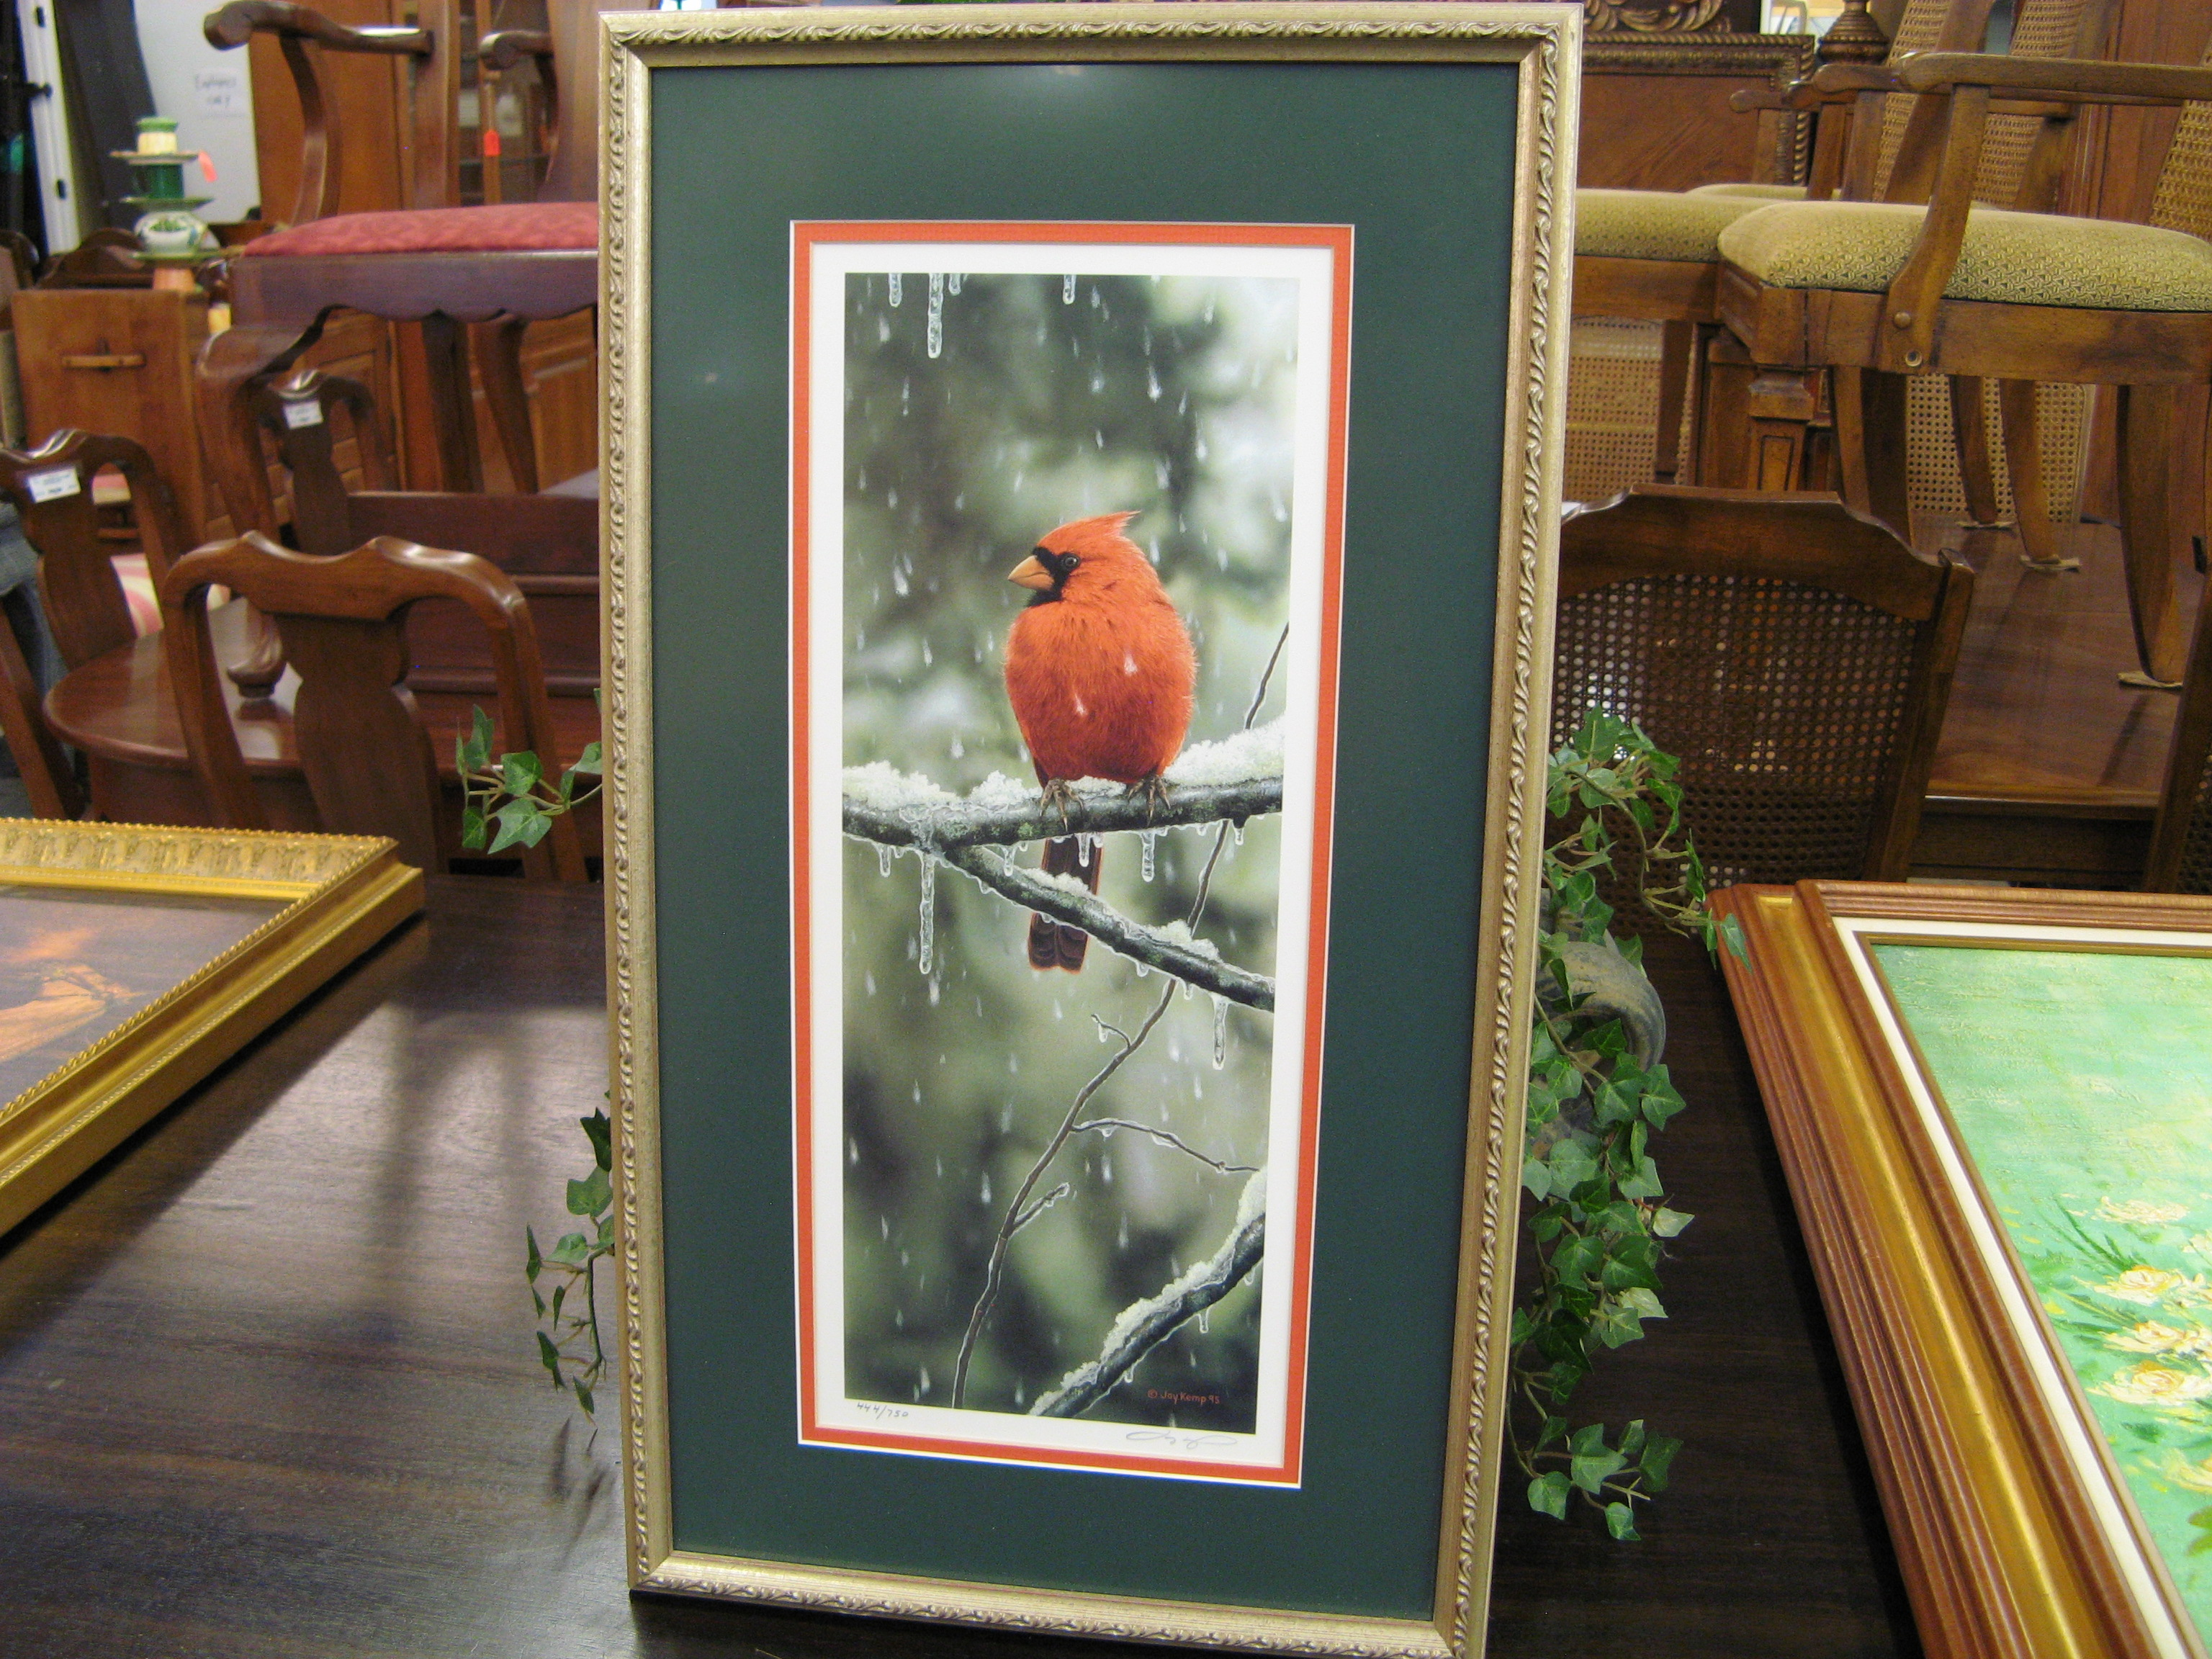 Cardinal Photo, Signed & Numbered, by Jay Kemp